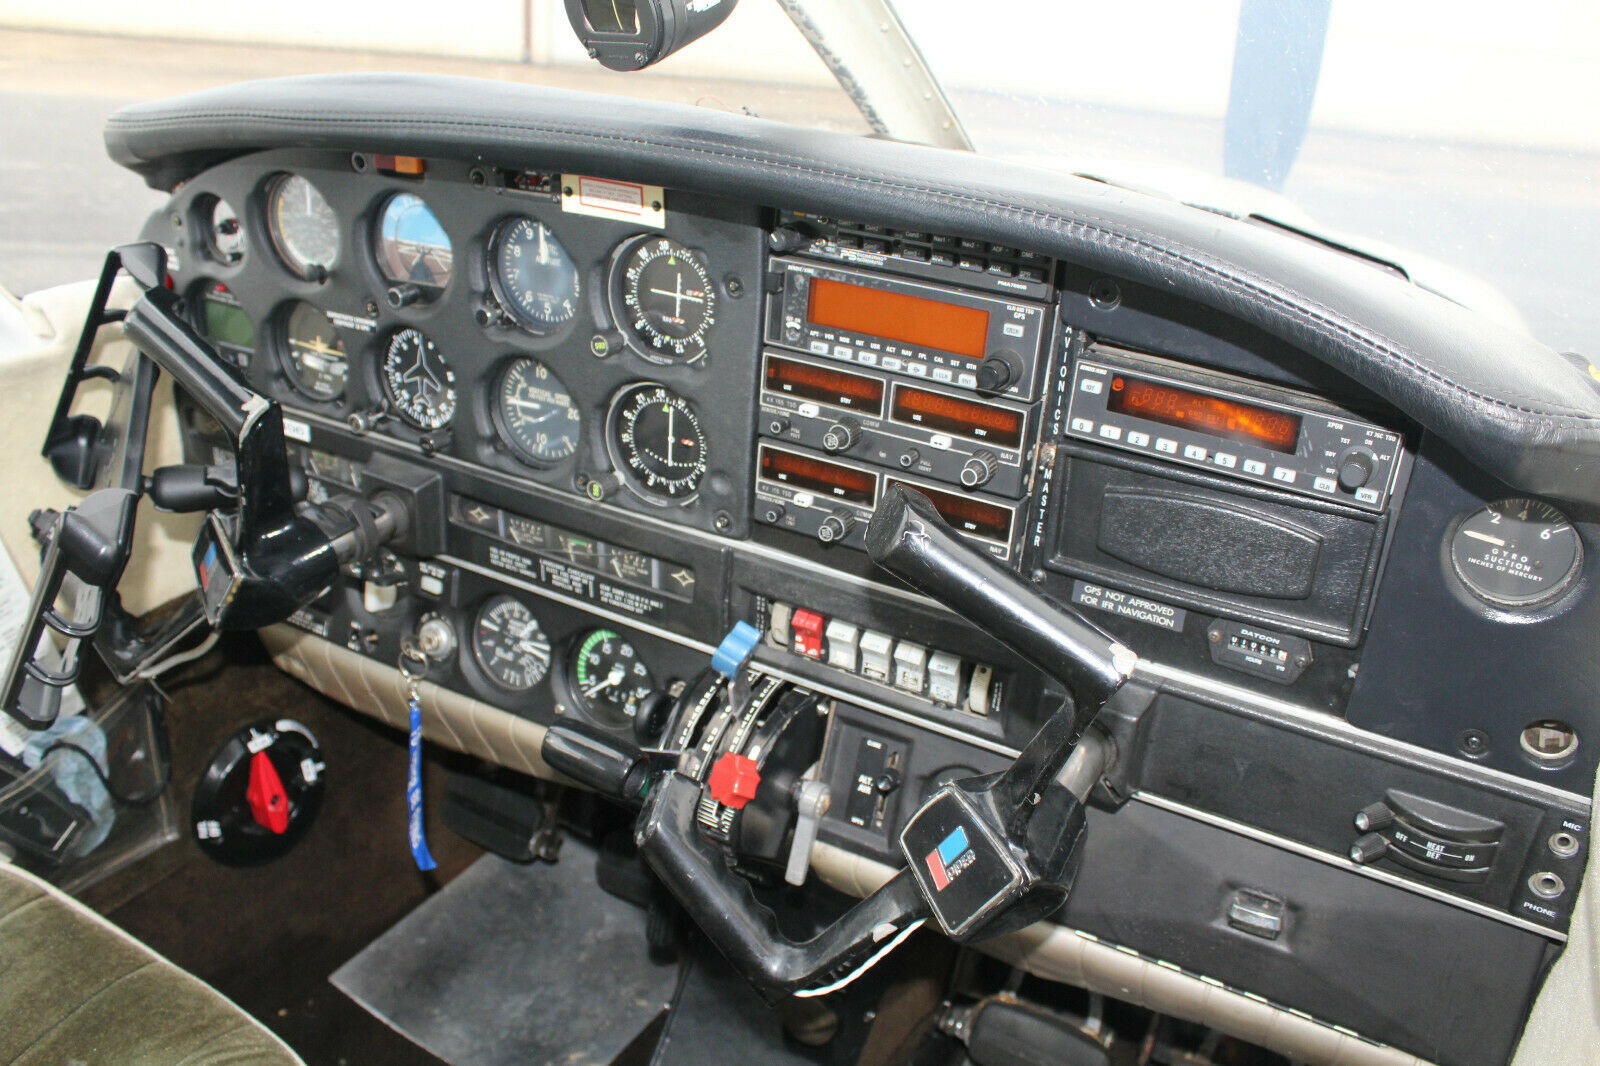 hangared 1974 Piper Arrow II Aircraft